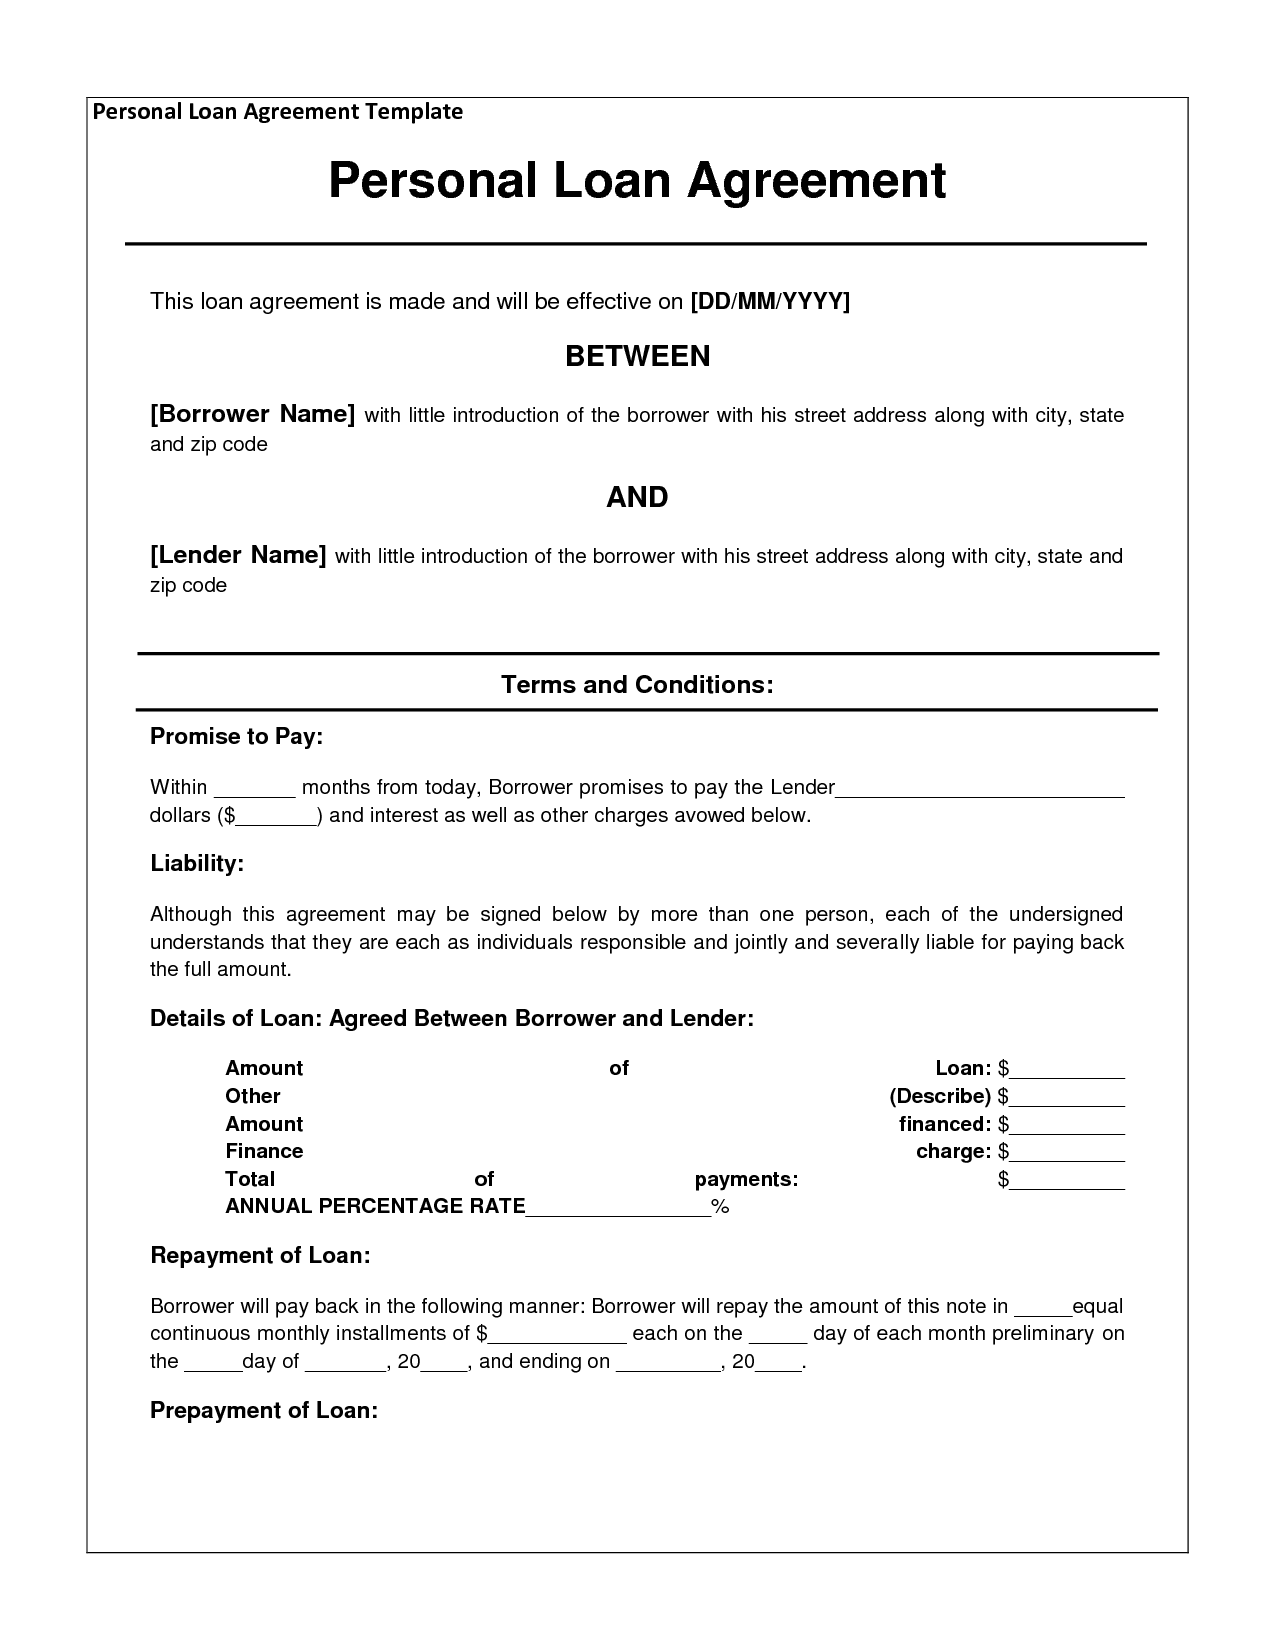 Simple Loan Agreement Template For Personal Loans : Vatansun